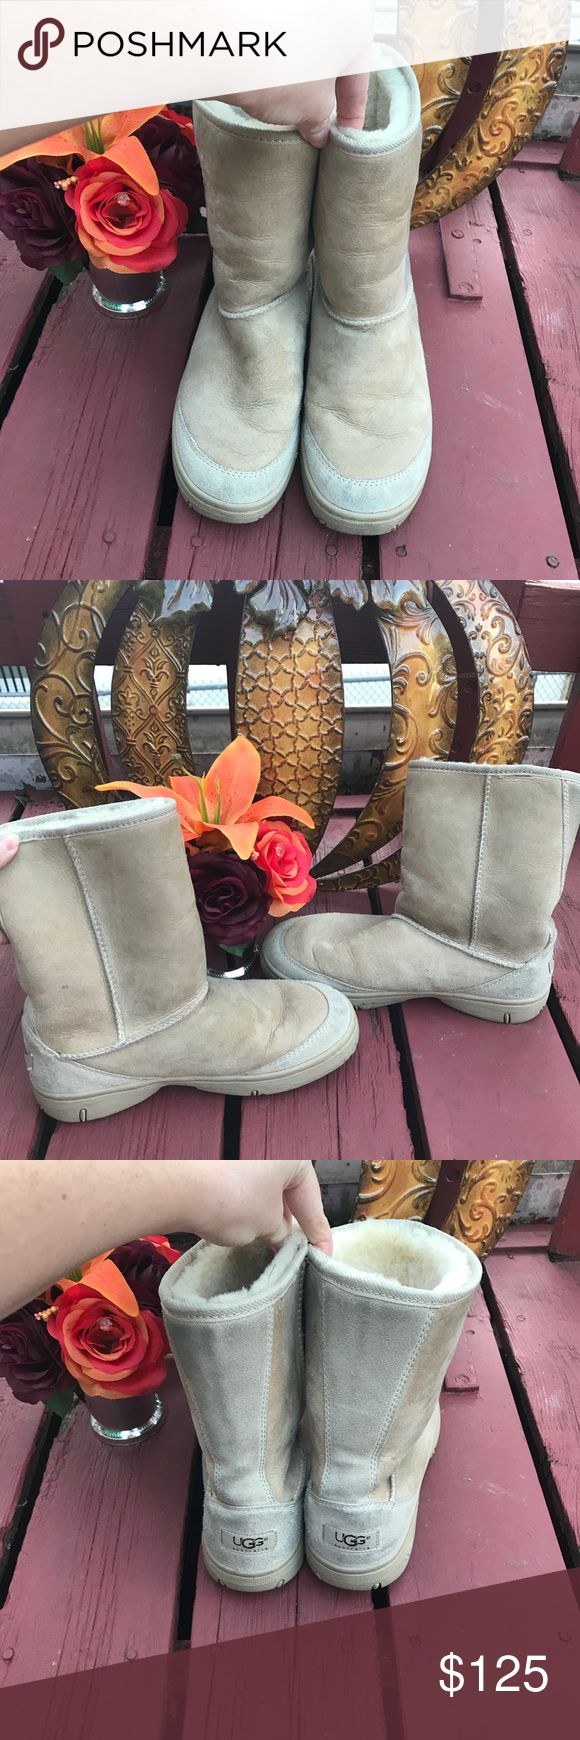 "ORIGINAL Tan UGGs These boots look different because they ARE different. The ""original"" style UGGs size 8 in EUC. I will include extra sheepskin inserts with these (worth $28). Doesn't everybody want to be ""original""?! 😃 UGG Shoes"